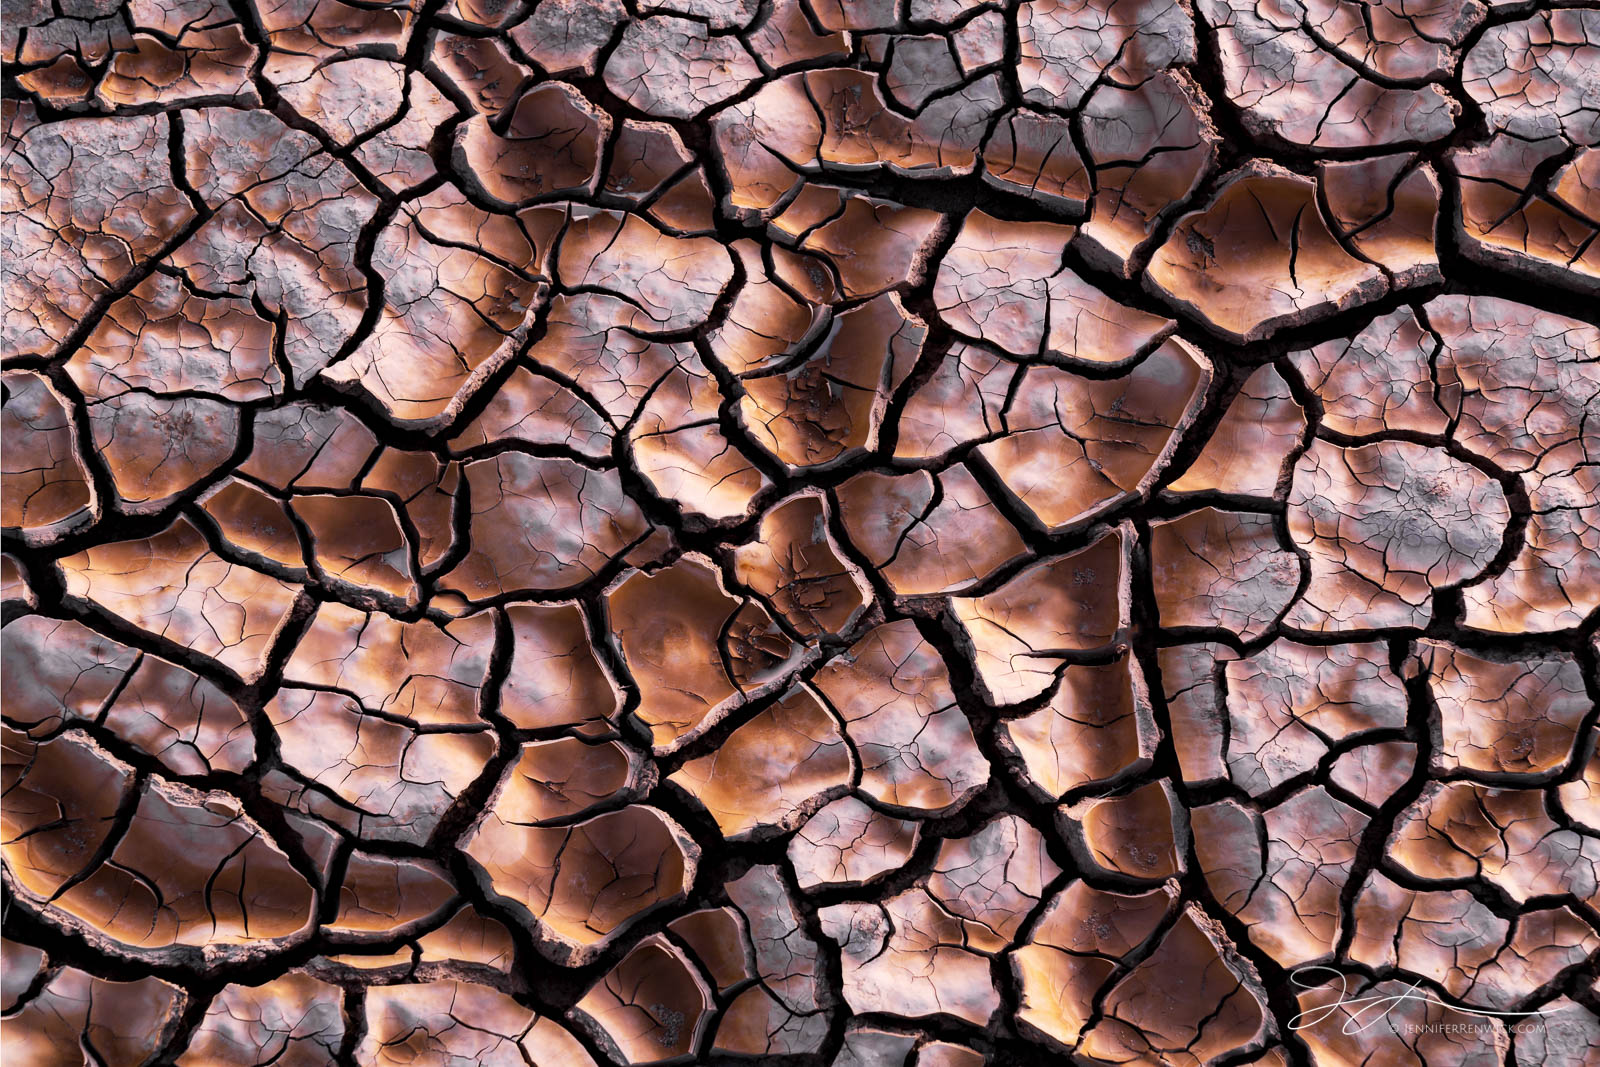 Small mud cracks within larger cracks create pathways through the dried mud on the desert floor.